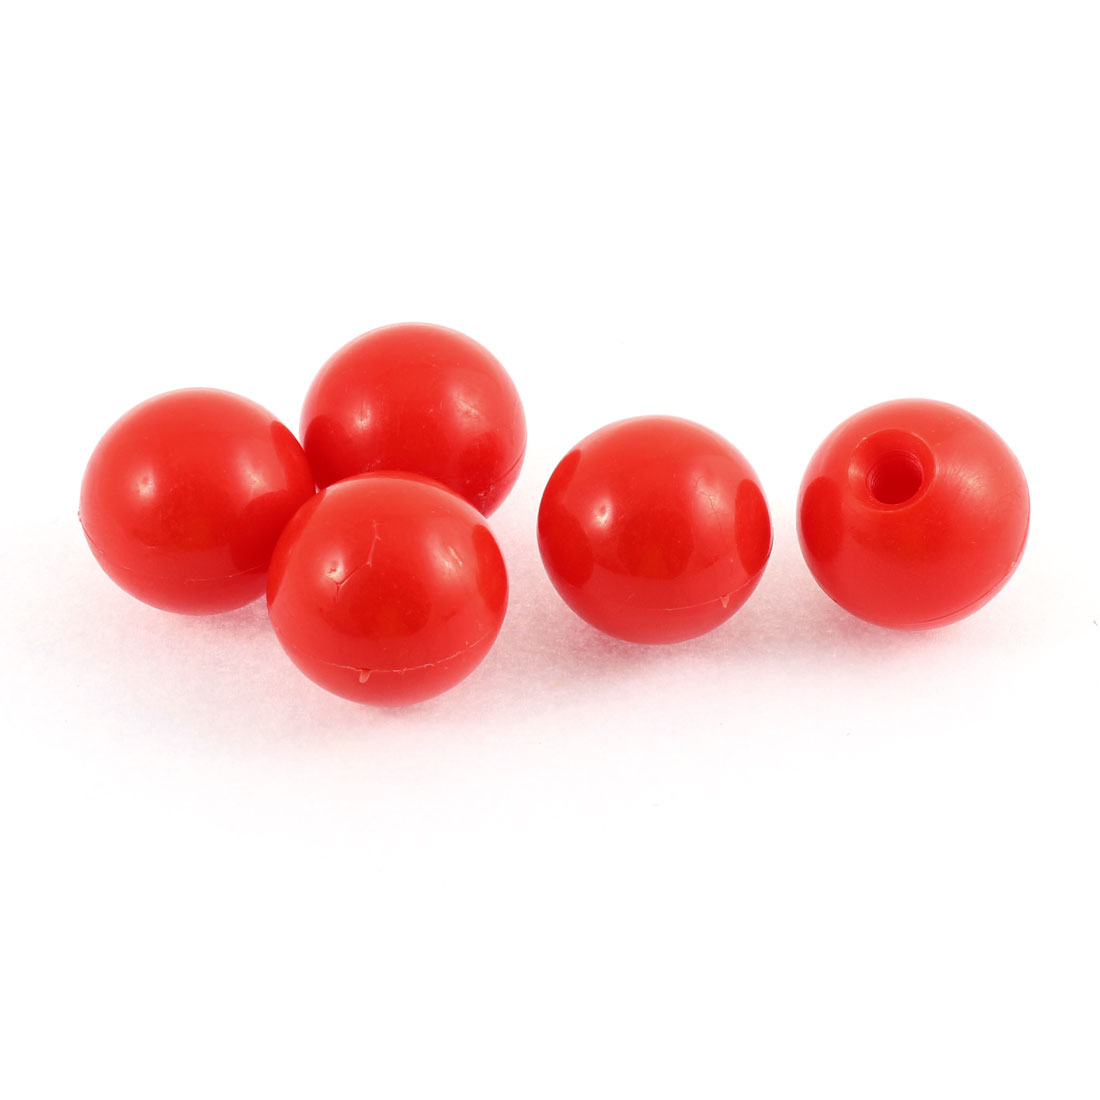 M10 Female Thread Red Plastic Ball Knobs Machine Tool 5 Pcs